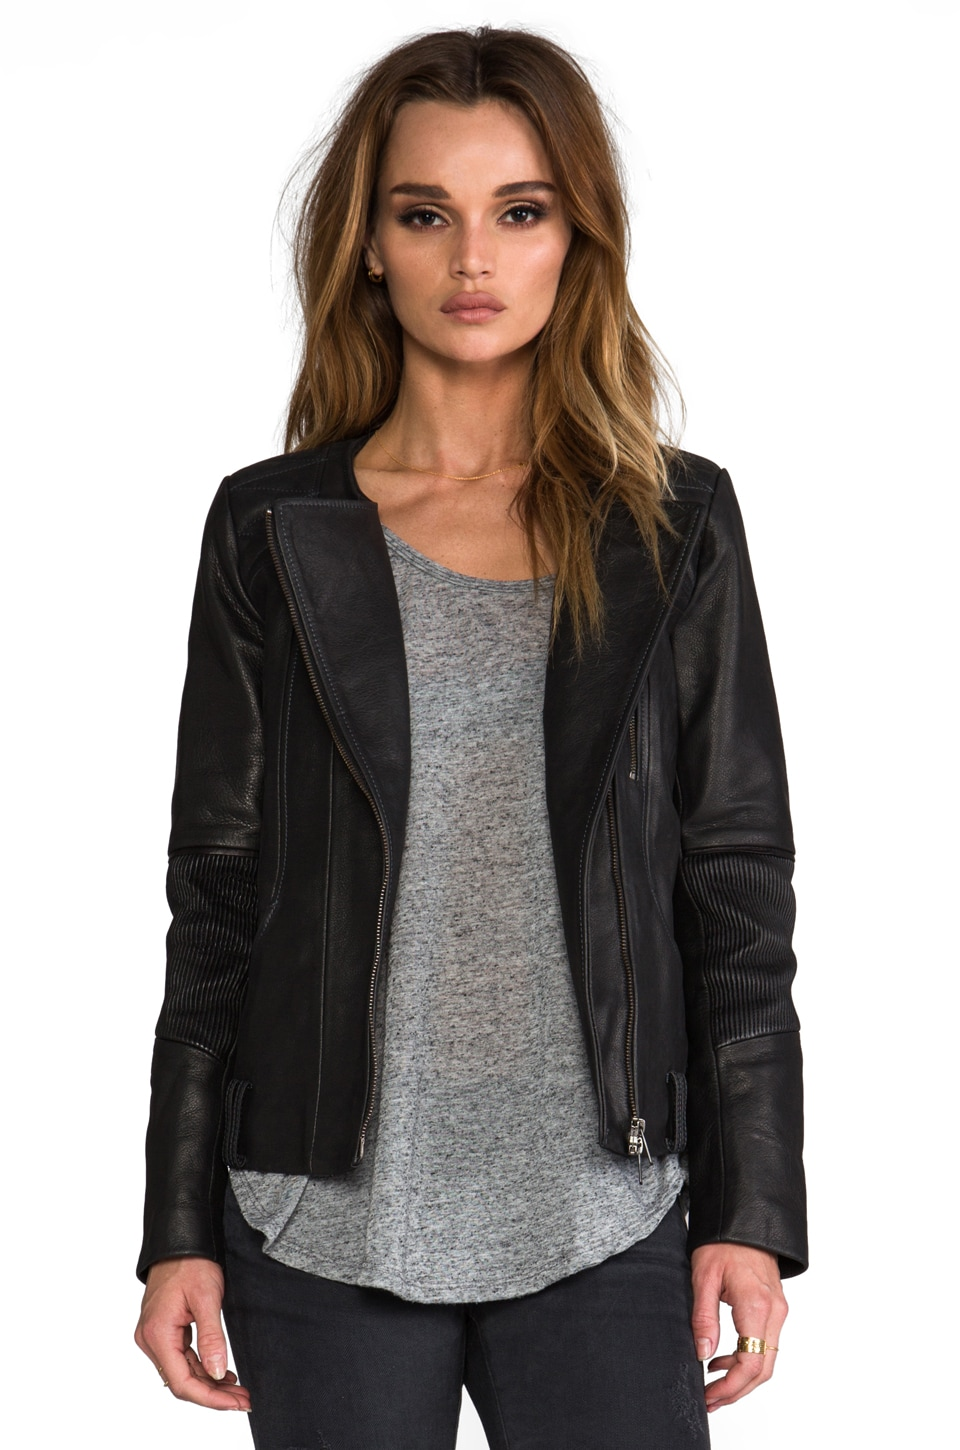 Francis Leon Rogue Jacket in Black